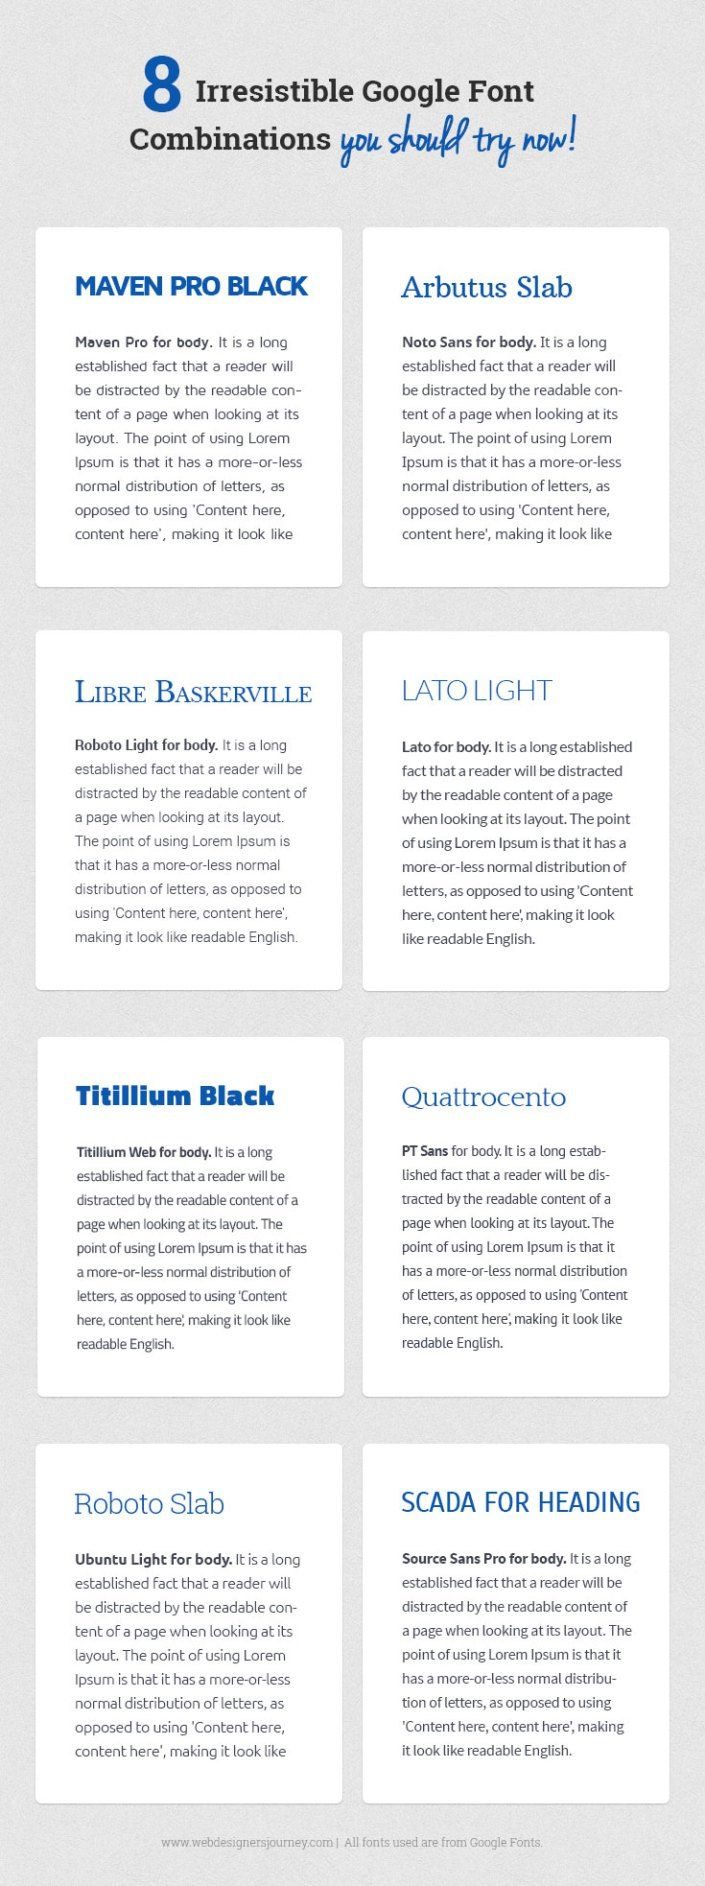 8 Irresistible Google Font Combinations You Should Try Now 2014